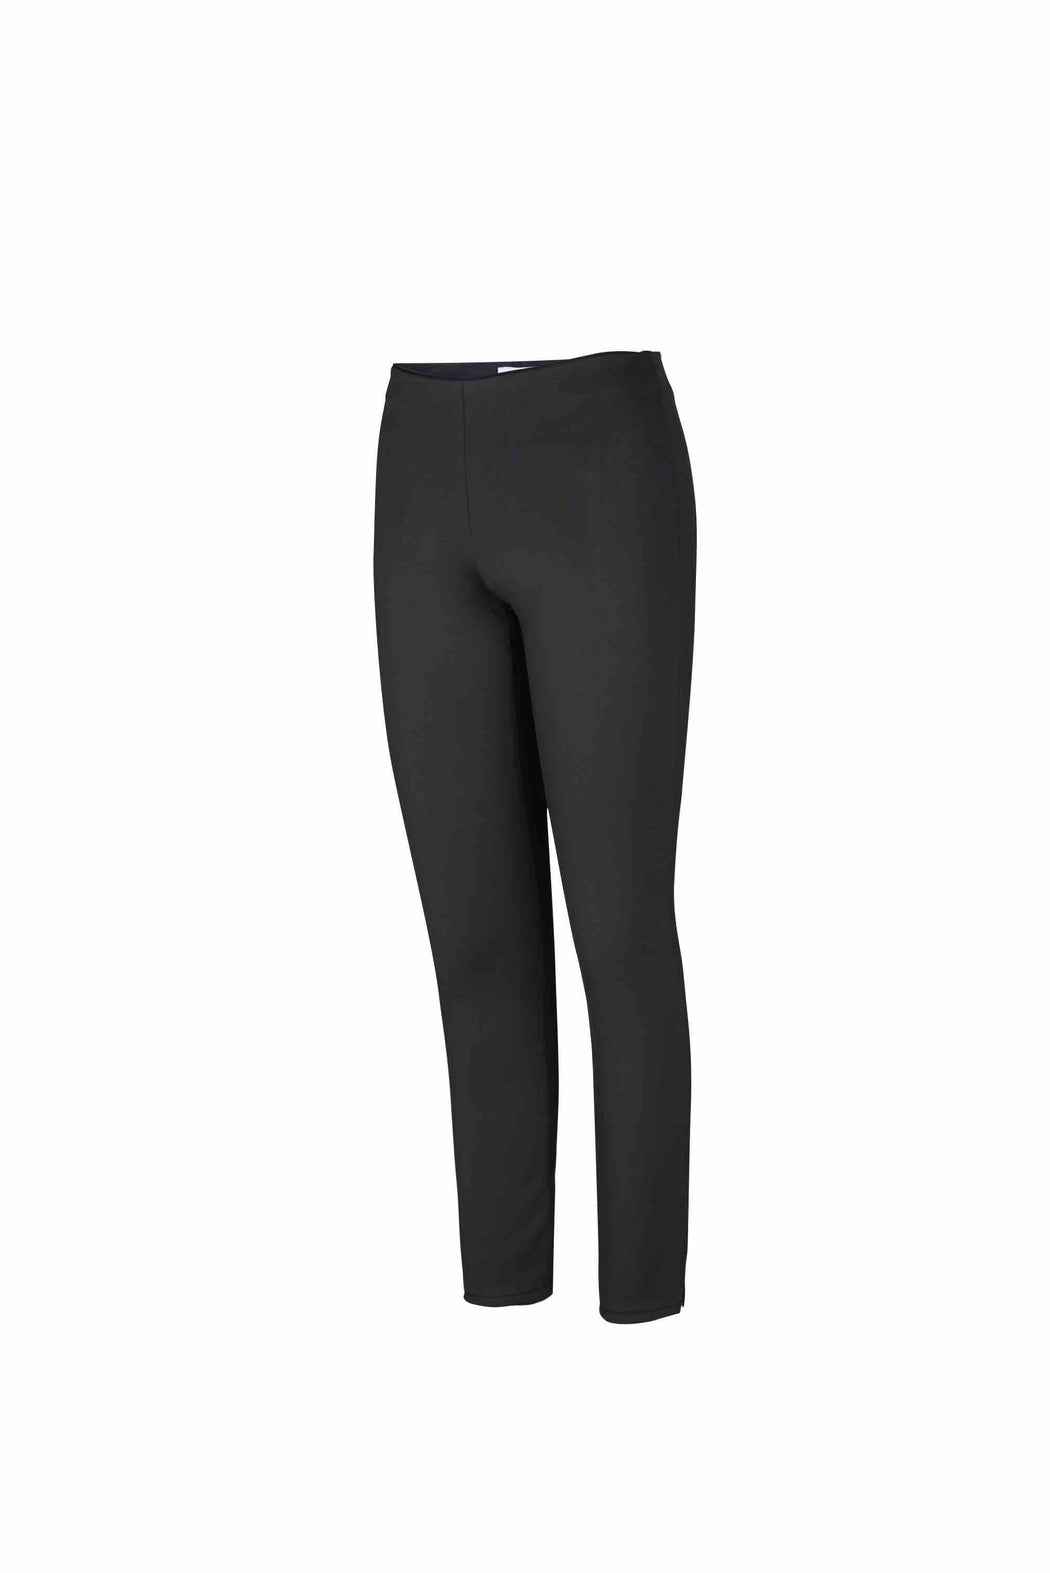 Side view of Women Super Stretchy Leggings in Black